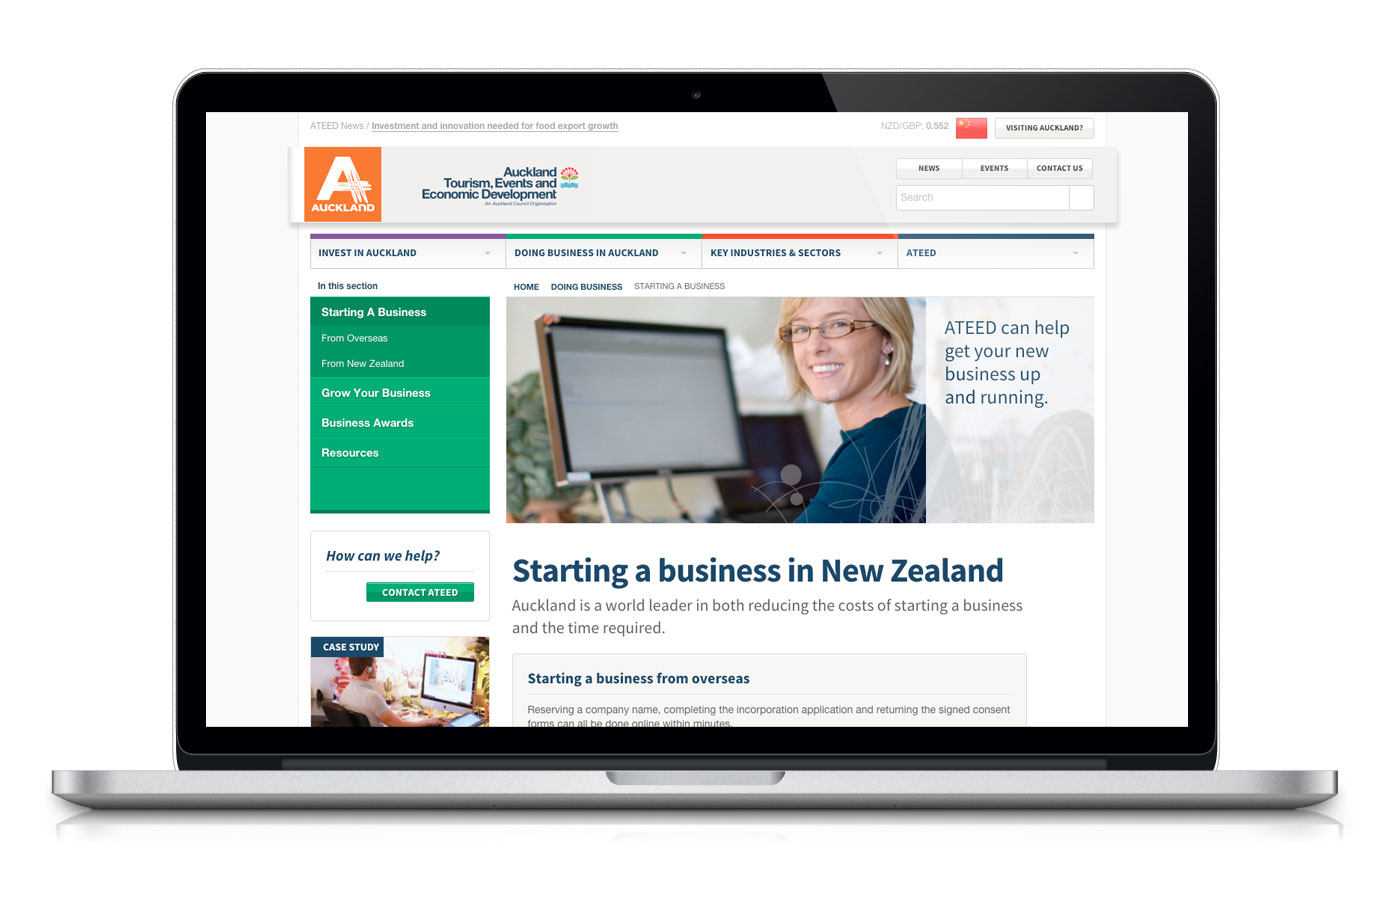 Business Auckland